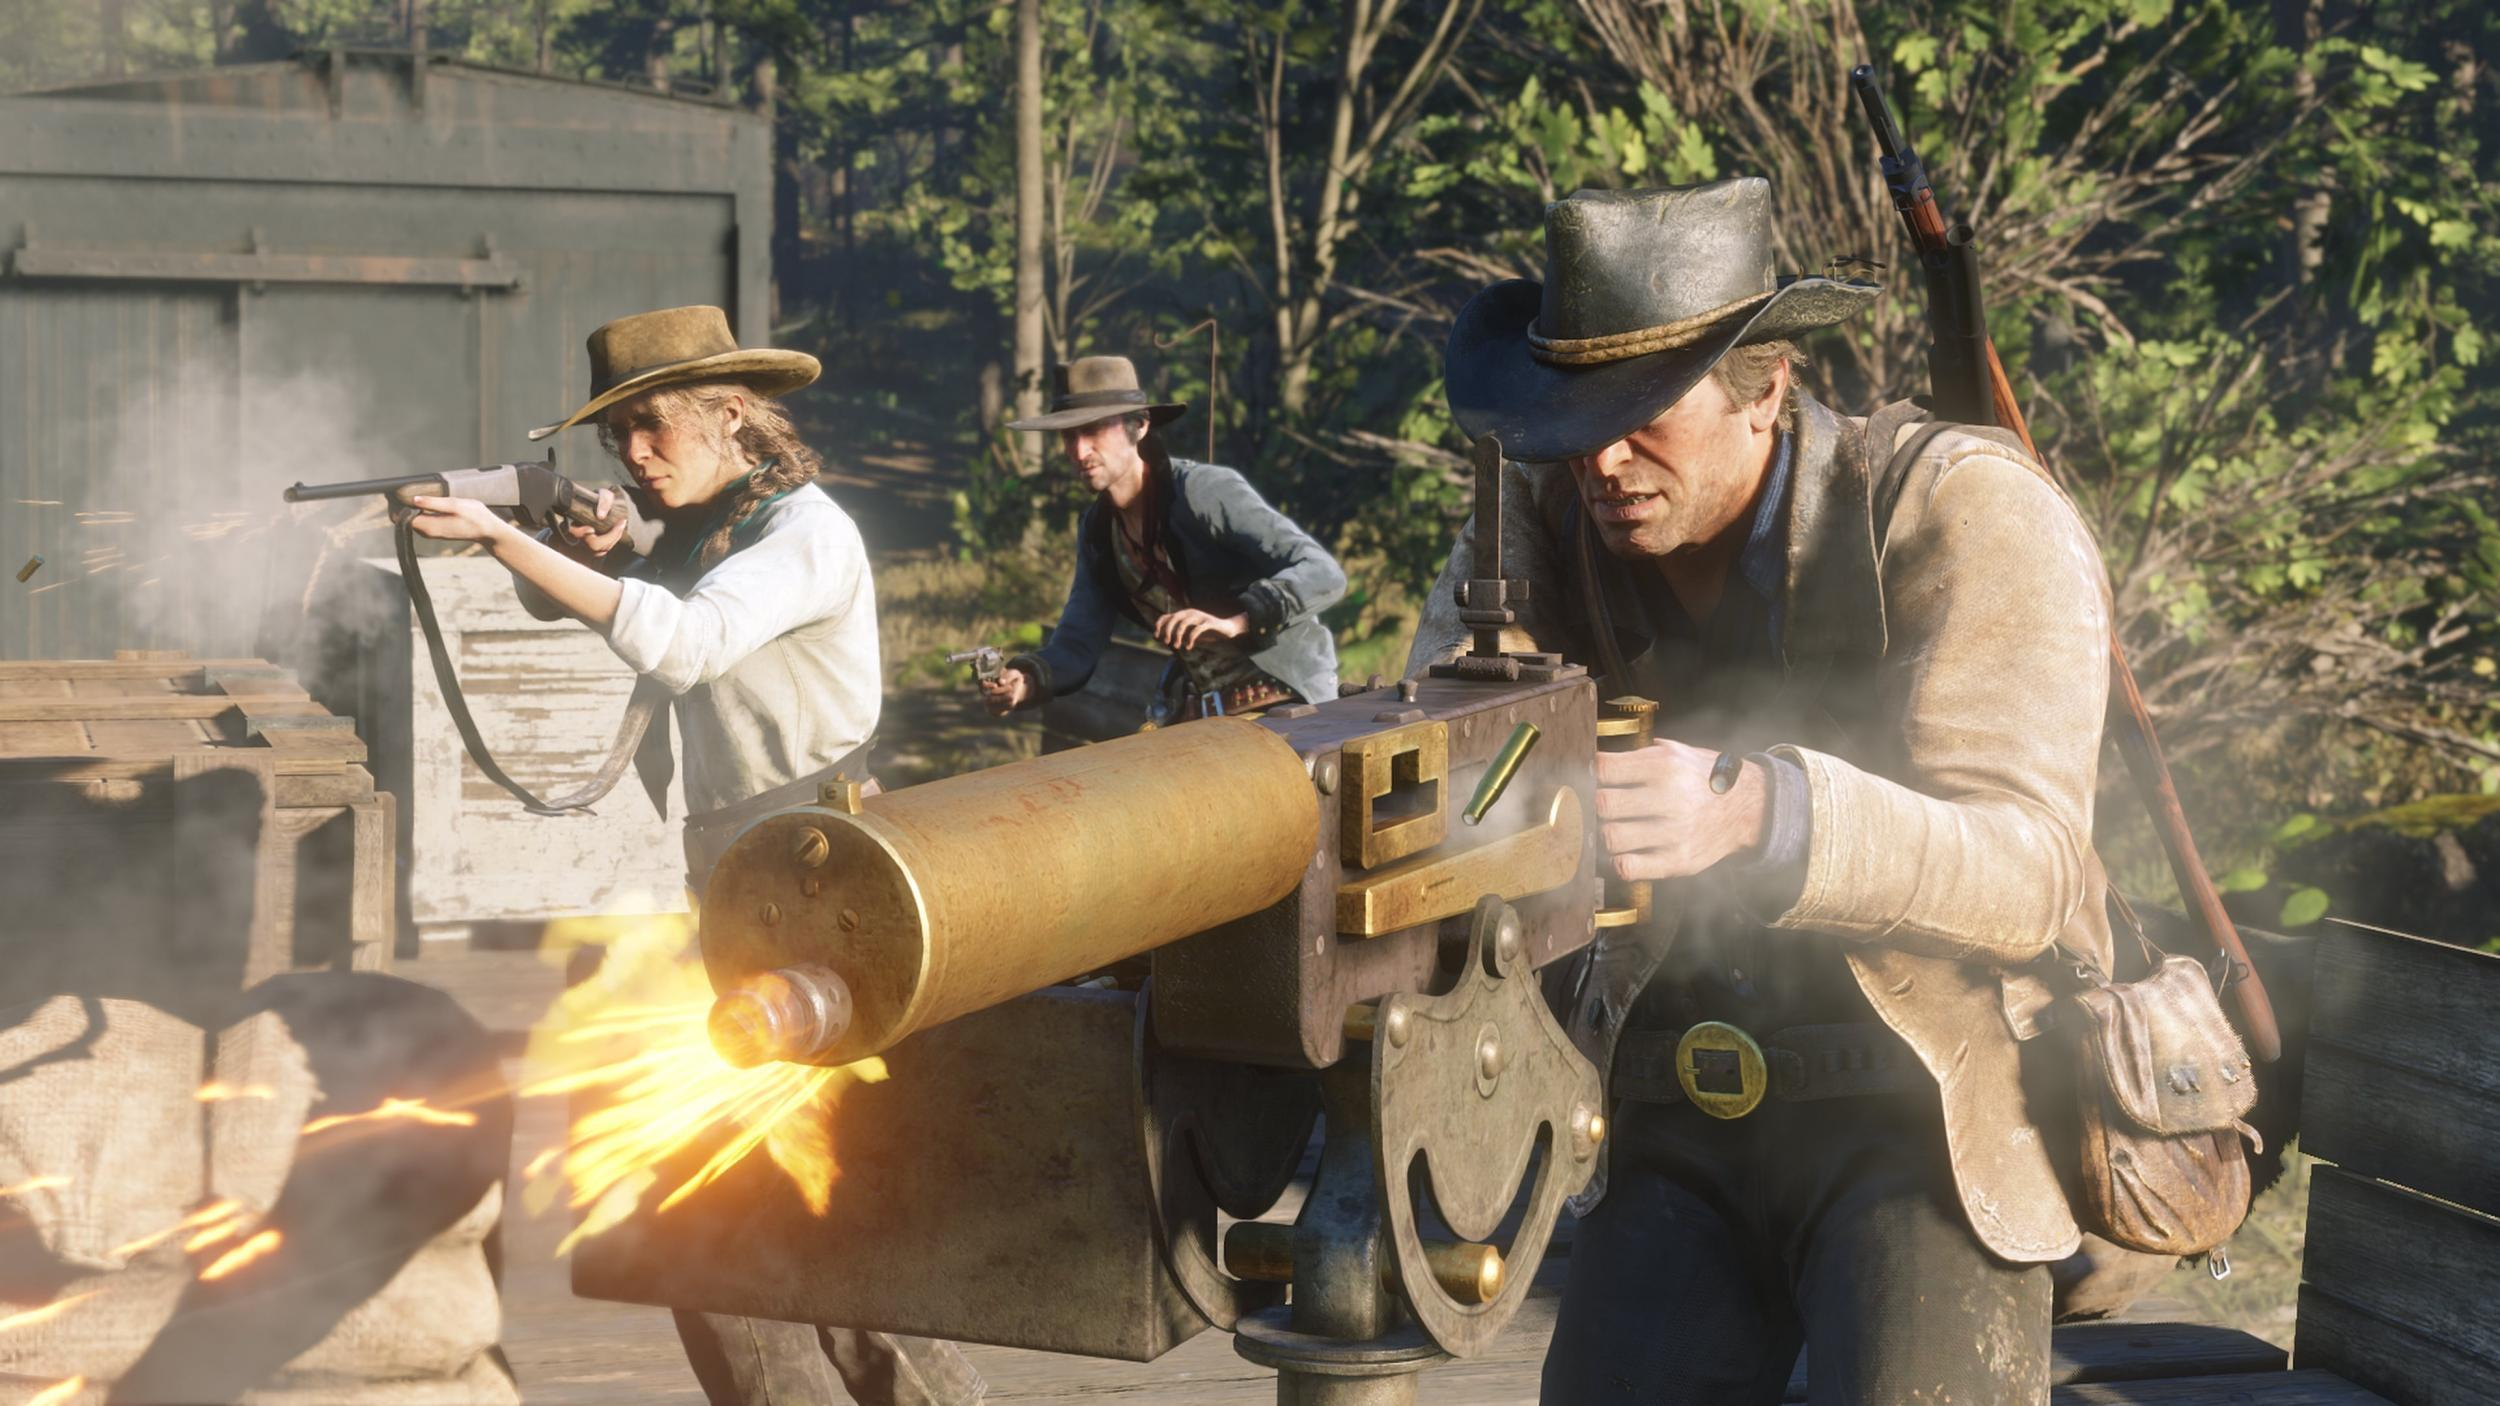 Red Dead Redemption 2: How to play without waiting for massive file